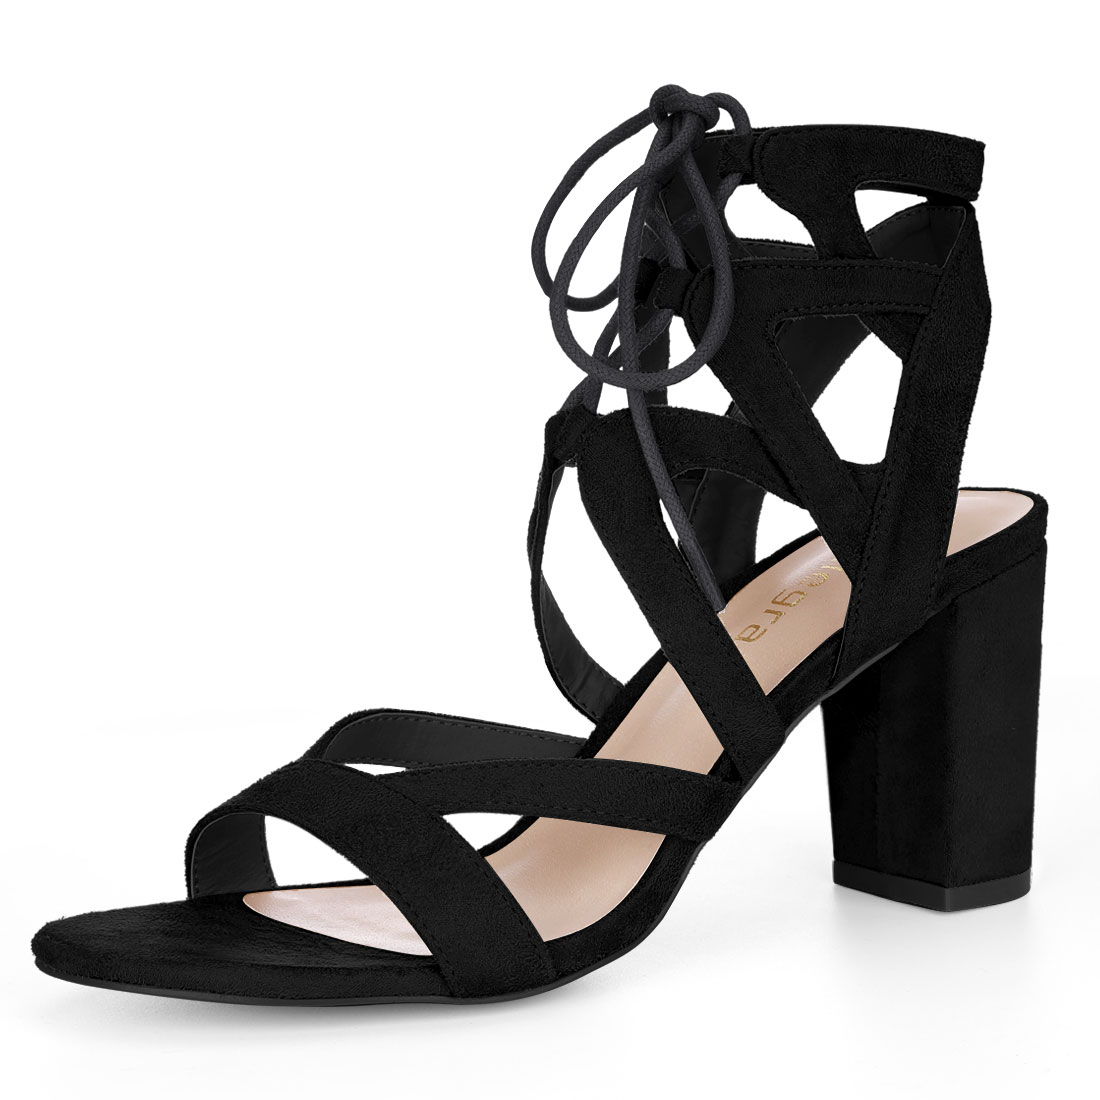 Allegra K Women Cutout Strappy Chunky Heel Lace-Up Sandals Black US 7